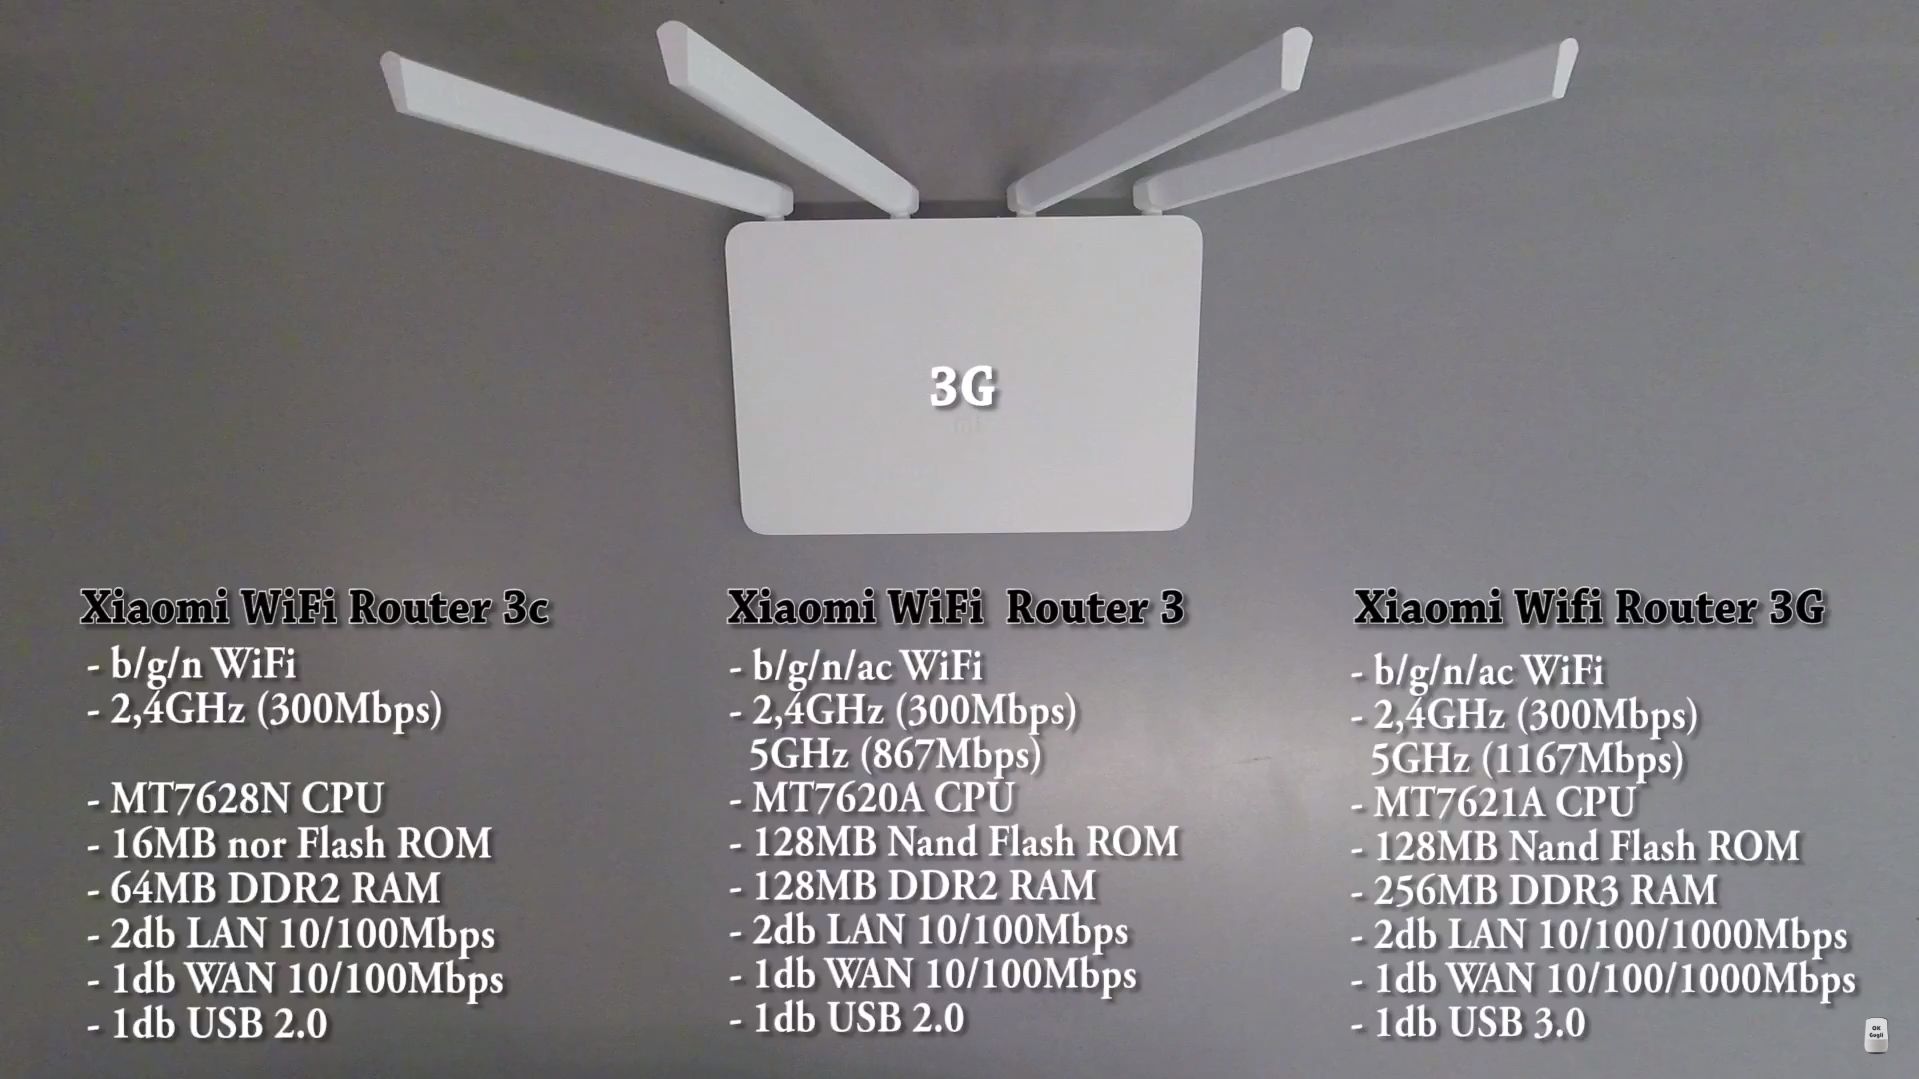 xiaomi wifi router 3 vs 3c vs 3g